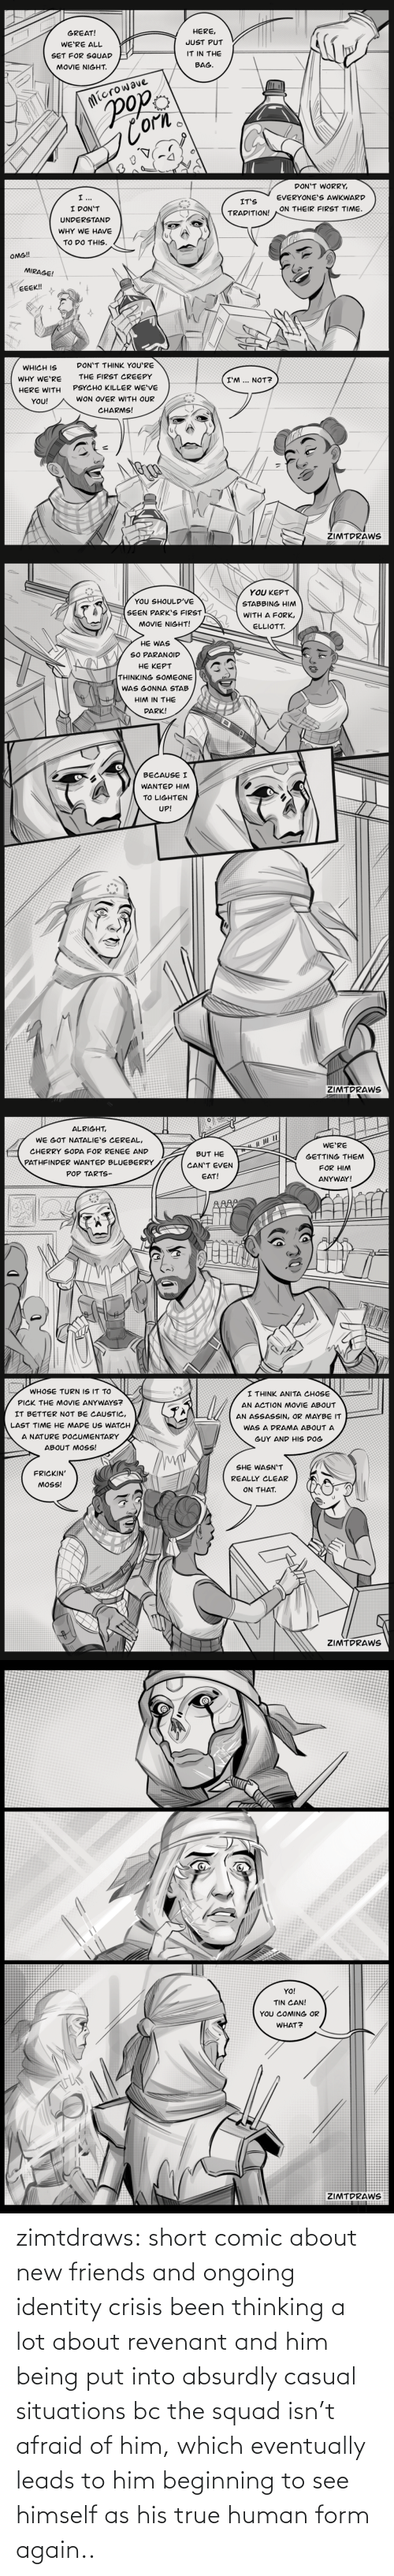 Casual: zimtdraws:  short comic about new friends and ongoing identity crisis  been thinking a lot about revenant and him being put into absurdly casual situations bc the squad isn't afraid of him, which eventually leads to him beginning to see himself as his true human form again..